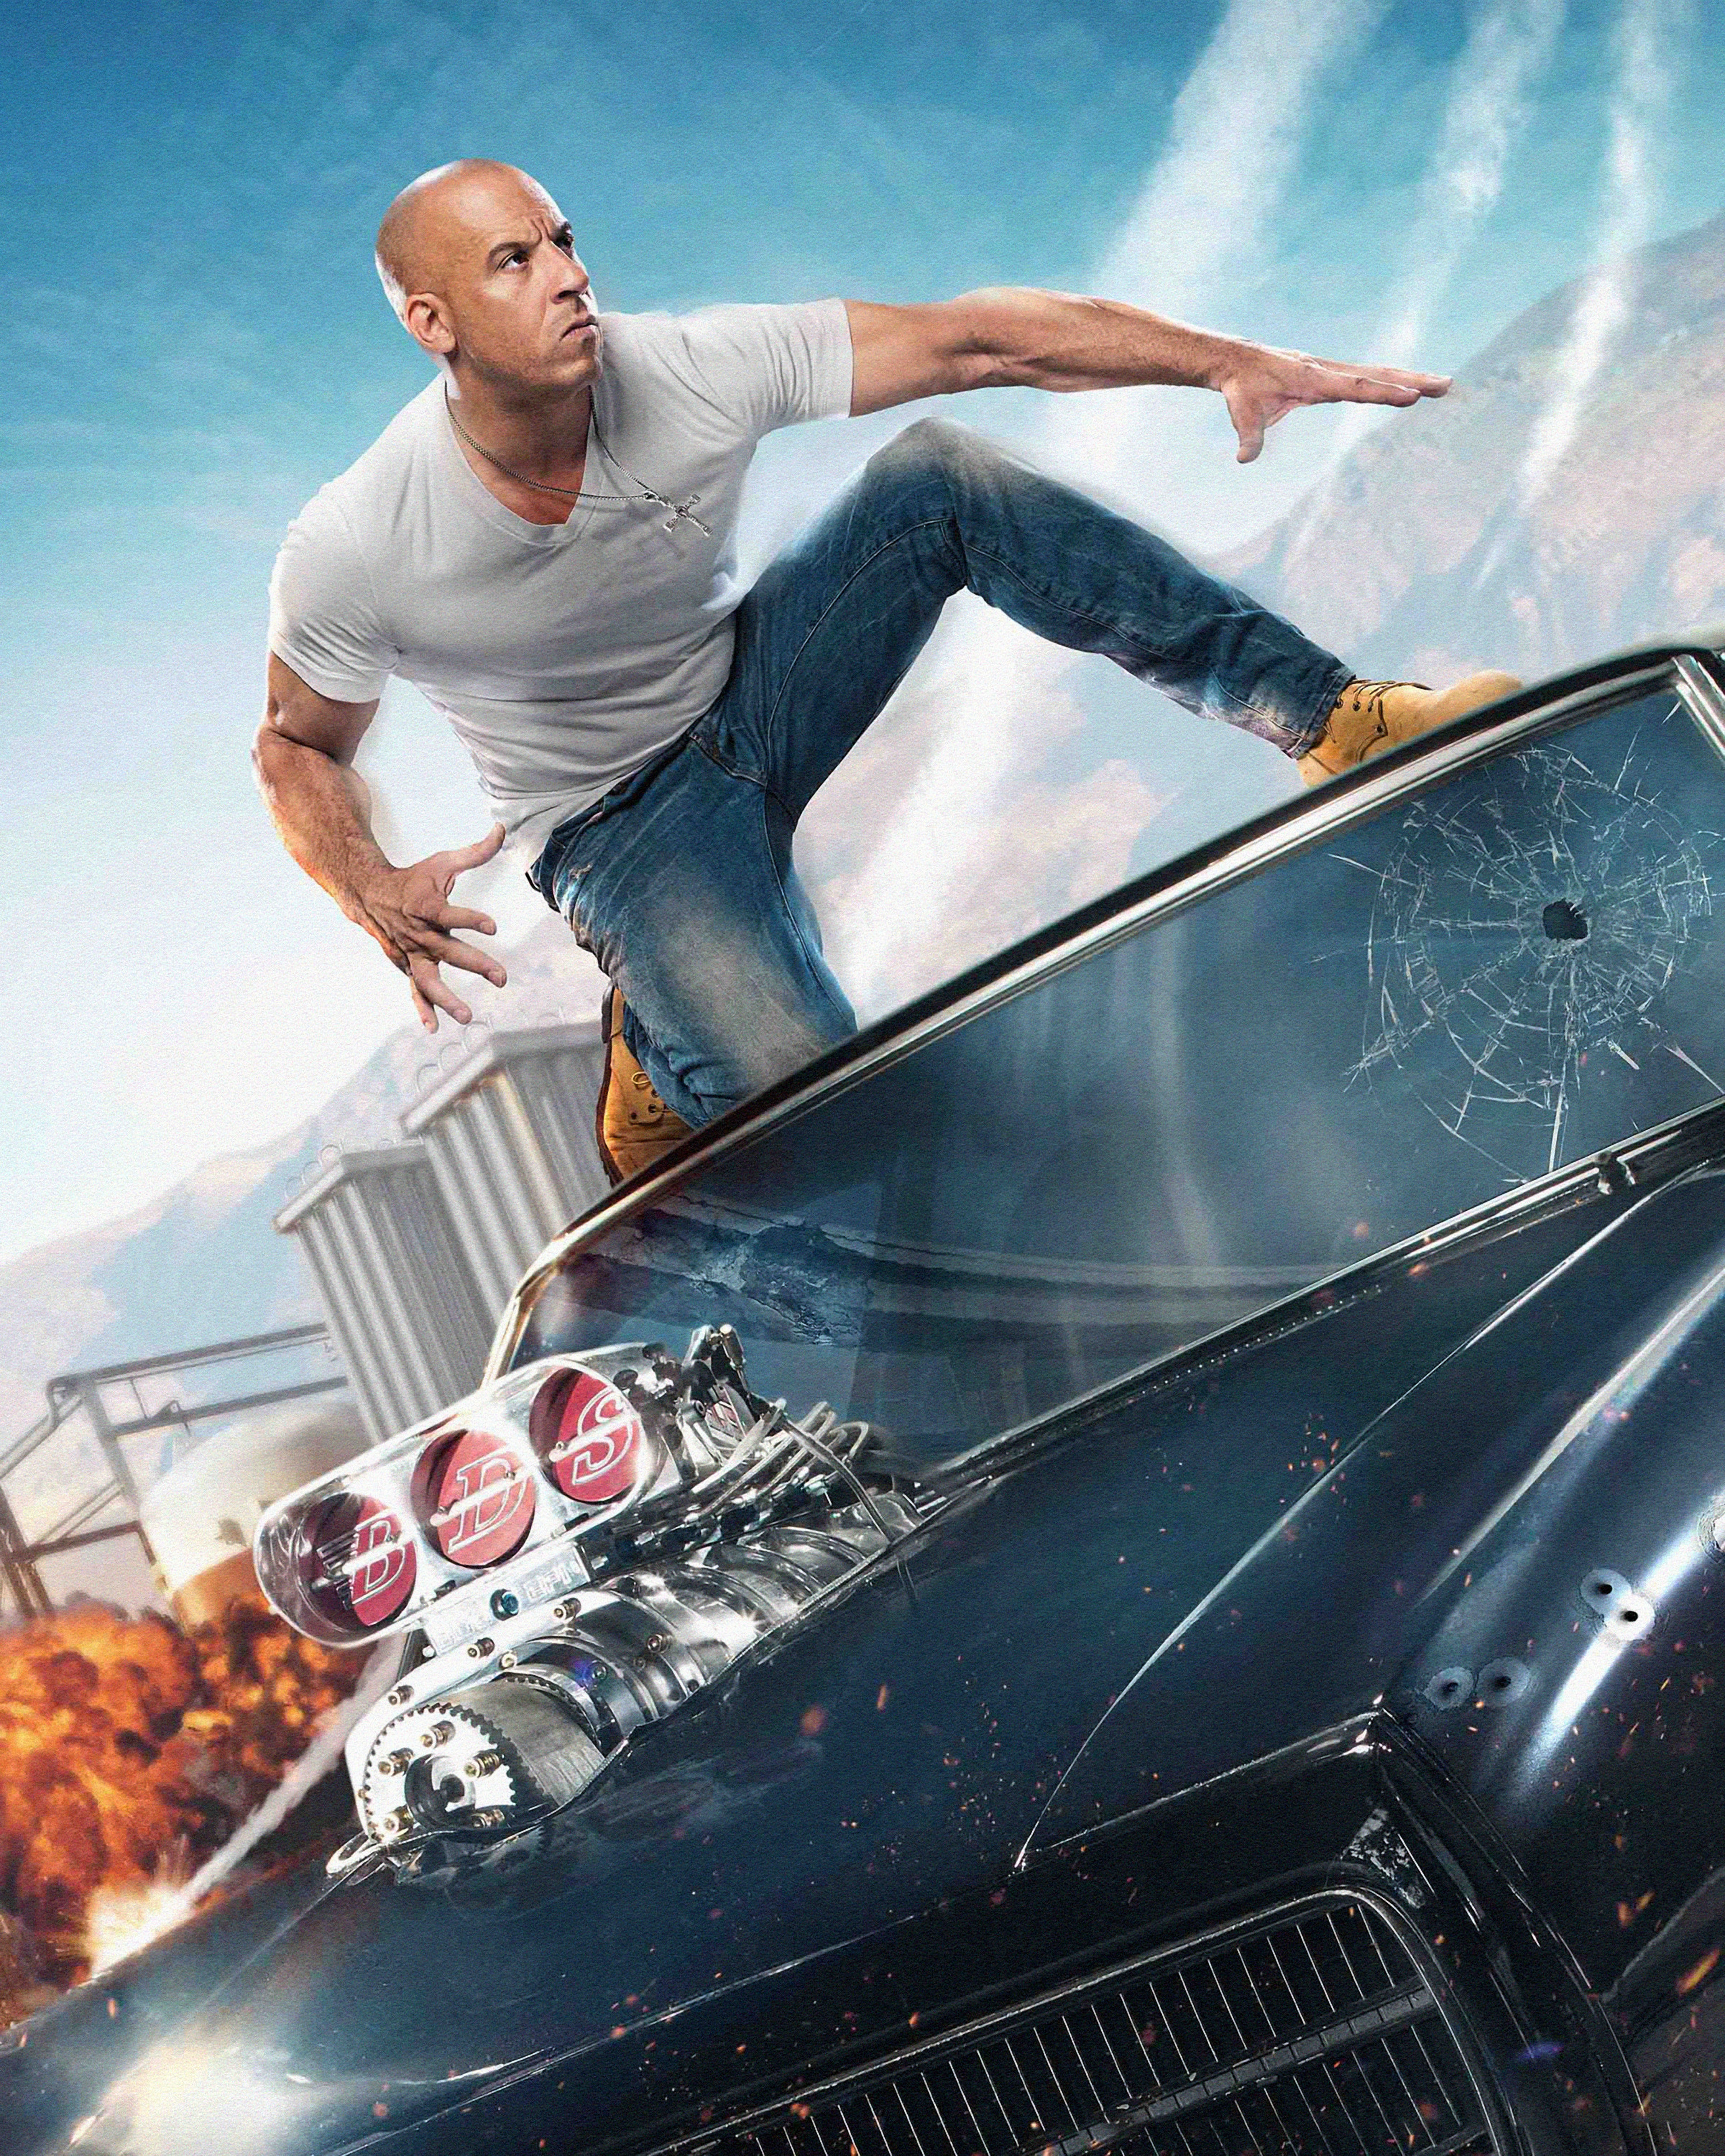 Pictures Fast Furious 8 Vin Diesel Man Movies 6000x7500